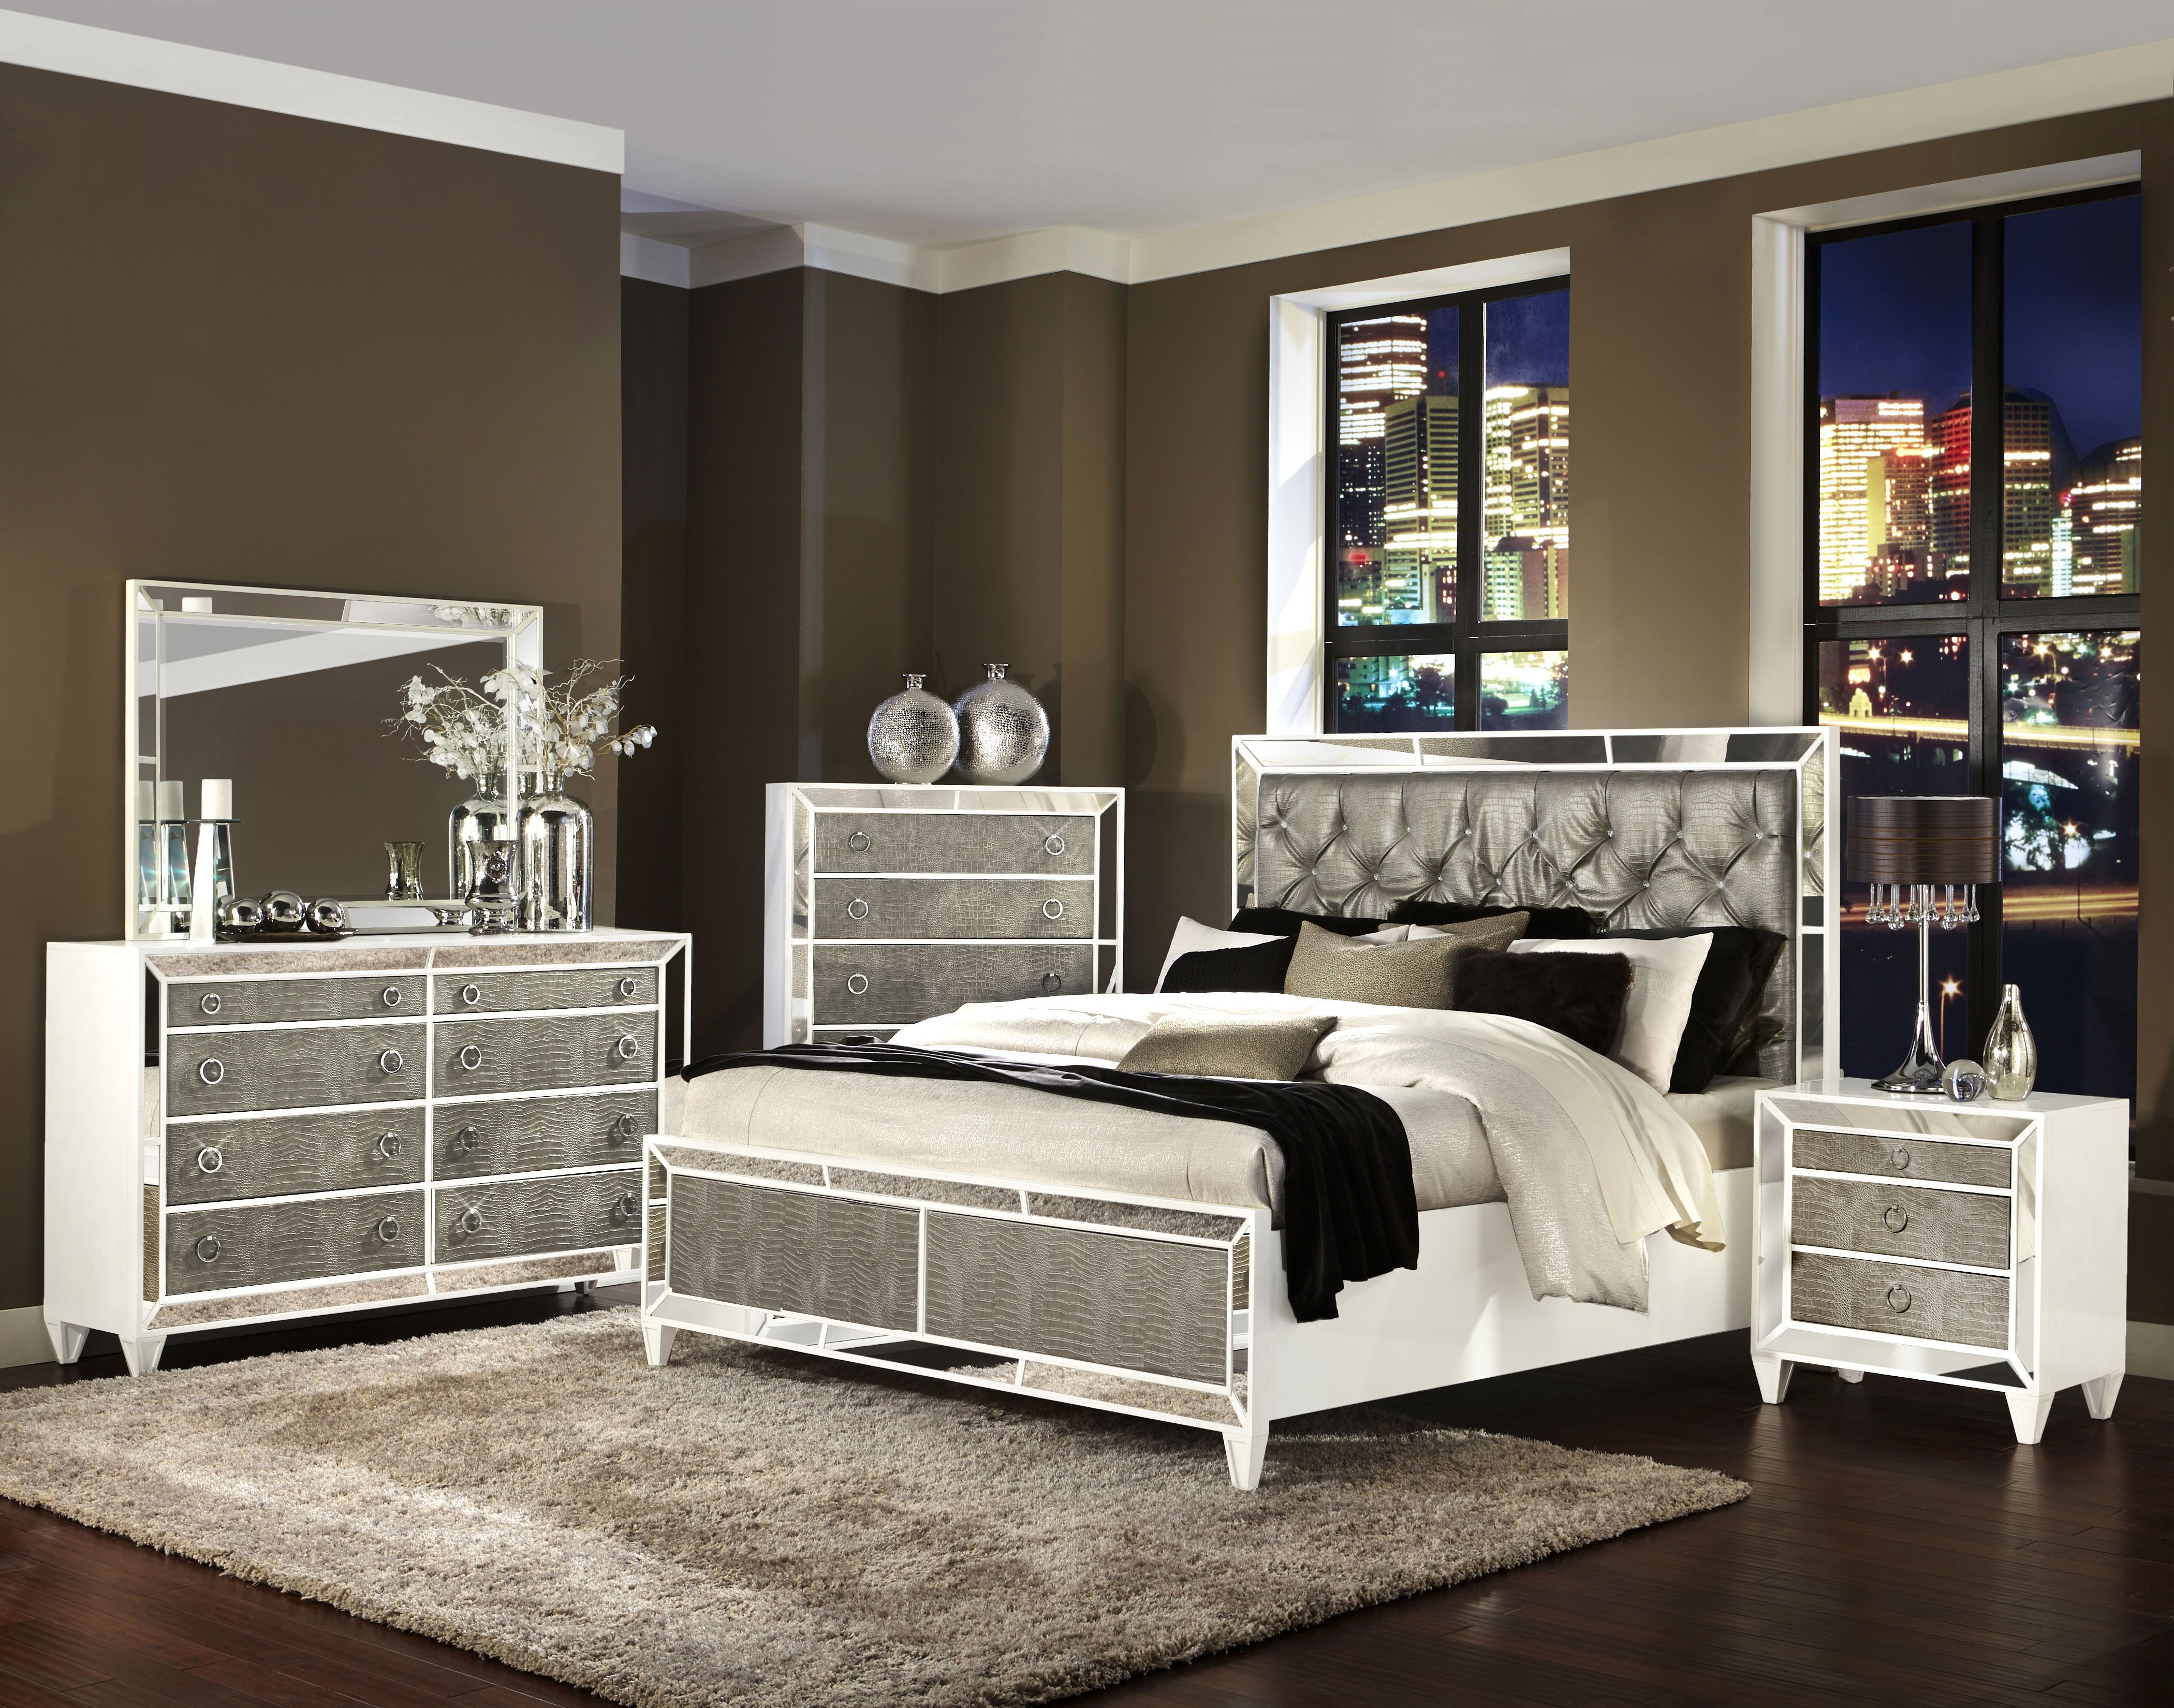 glass bedroom set monroe pearlizzed white wood glass 2pc 11698 | bc4f2bef85913b1006693dd867aeef3d